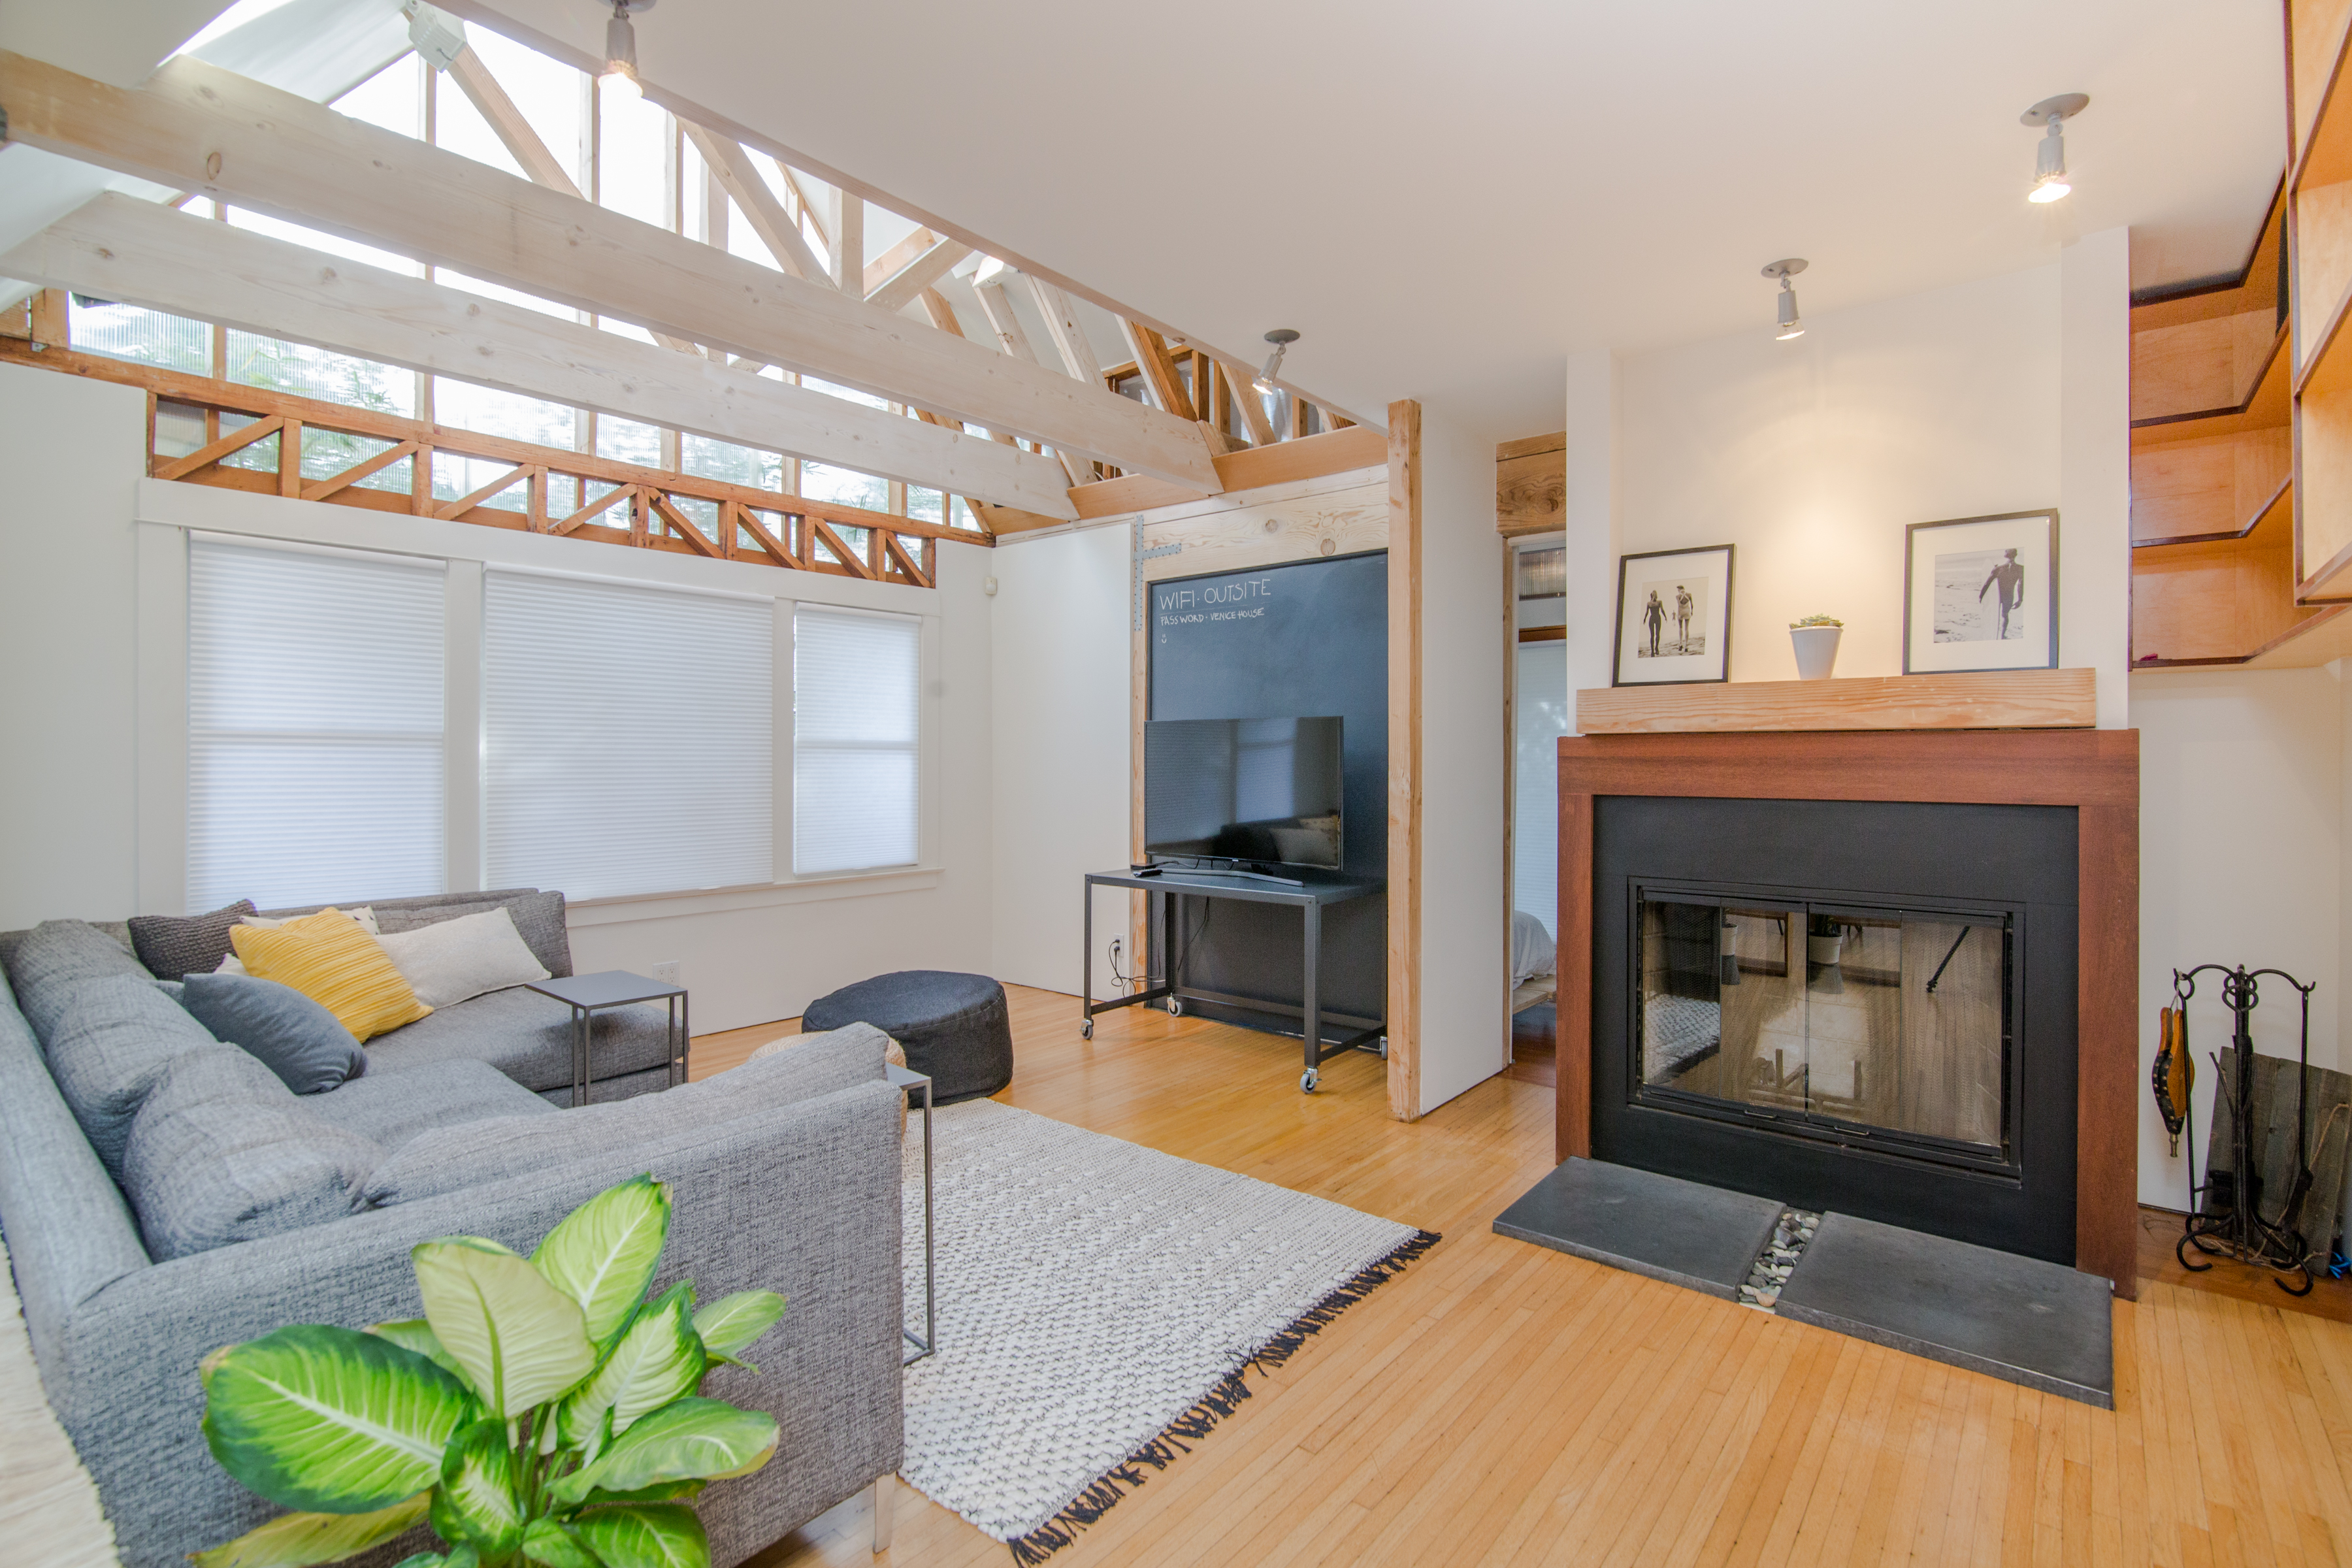 Three Lighting Areas to Consider When Selling Your Home